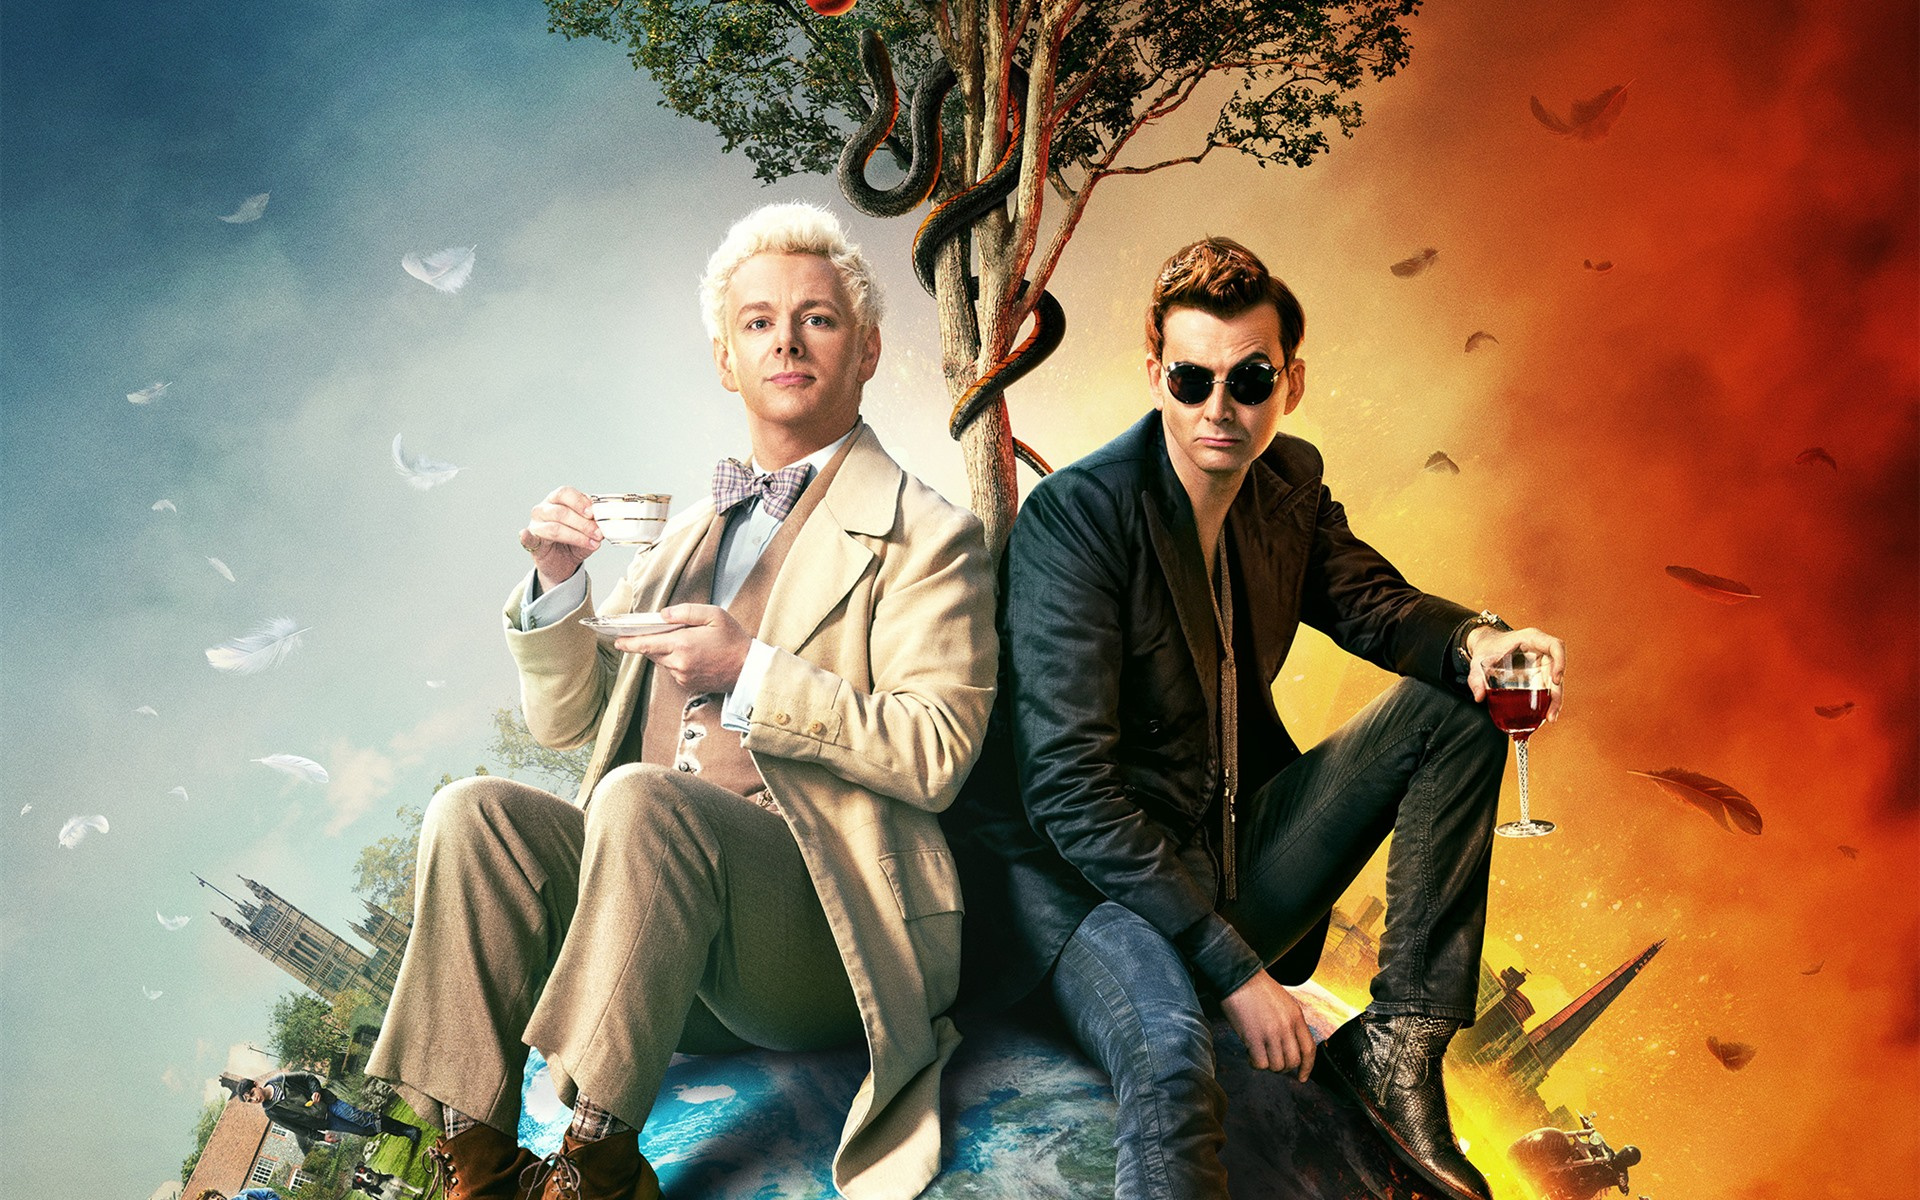 Wallpaper Good Omens 1920x1440 HD Picture Image 1920x1200